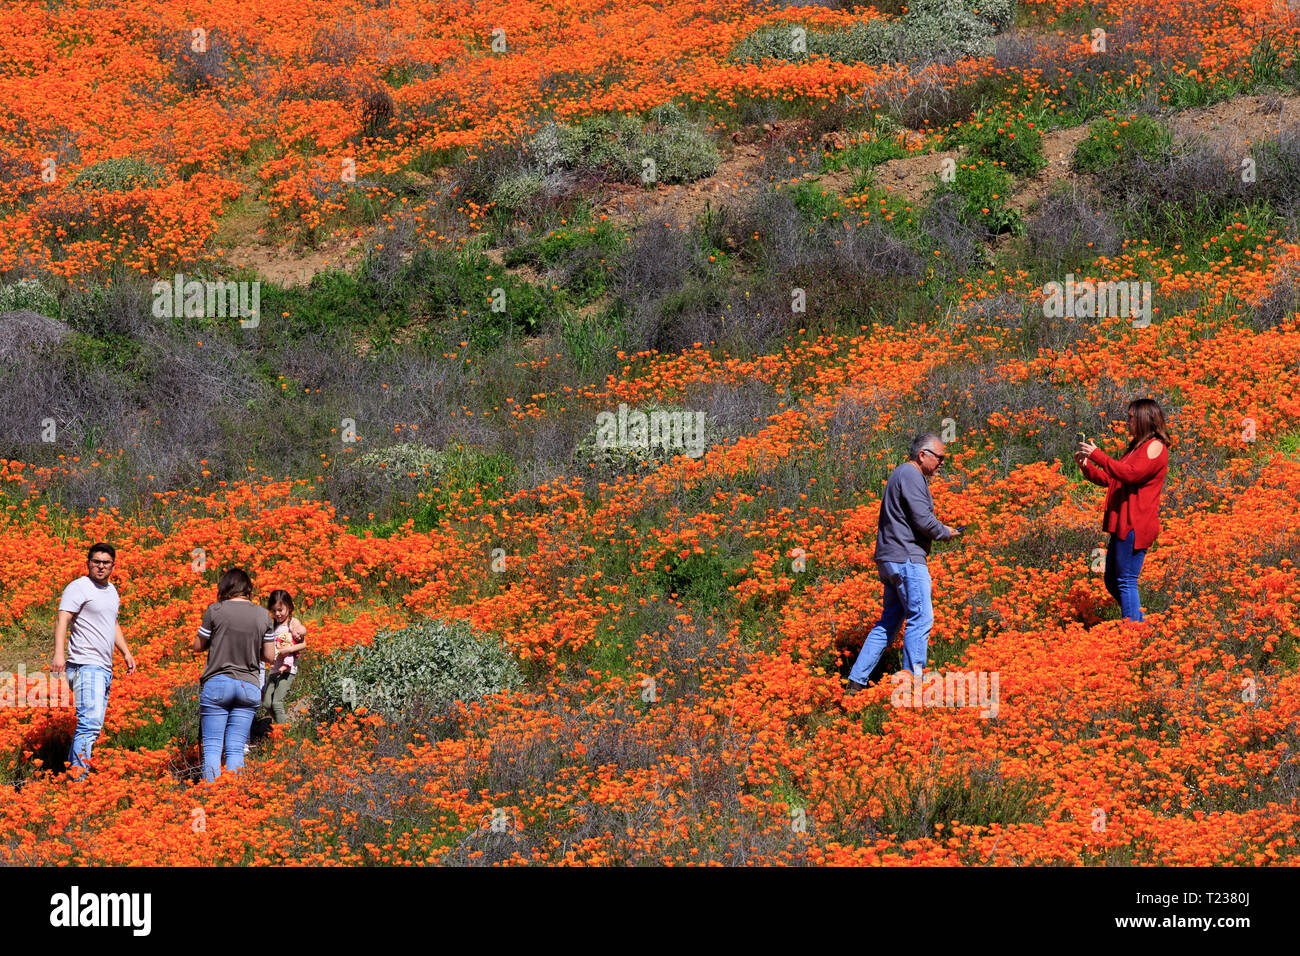 Poppy flowers, Walker Canyon Conservation Area, Lake Elsinore, Riverside County, California,USA Stock Photo